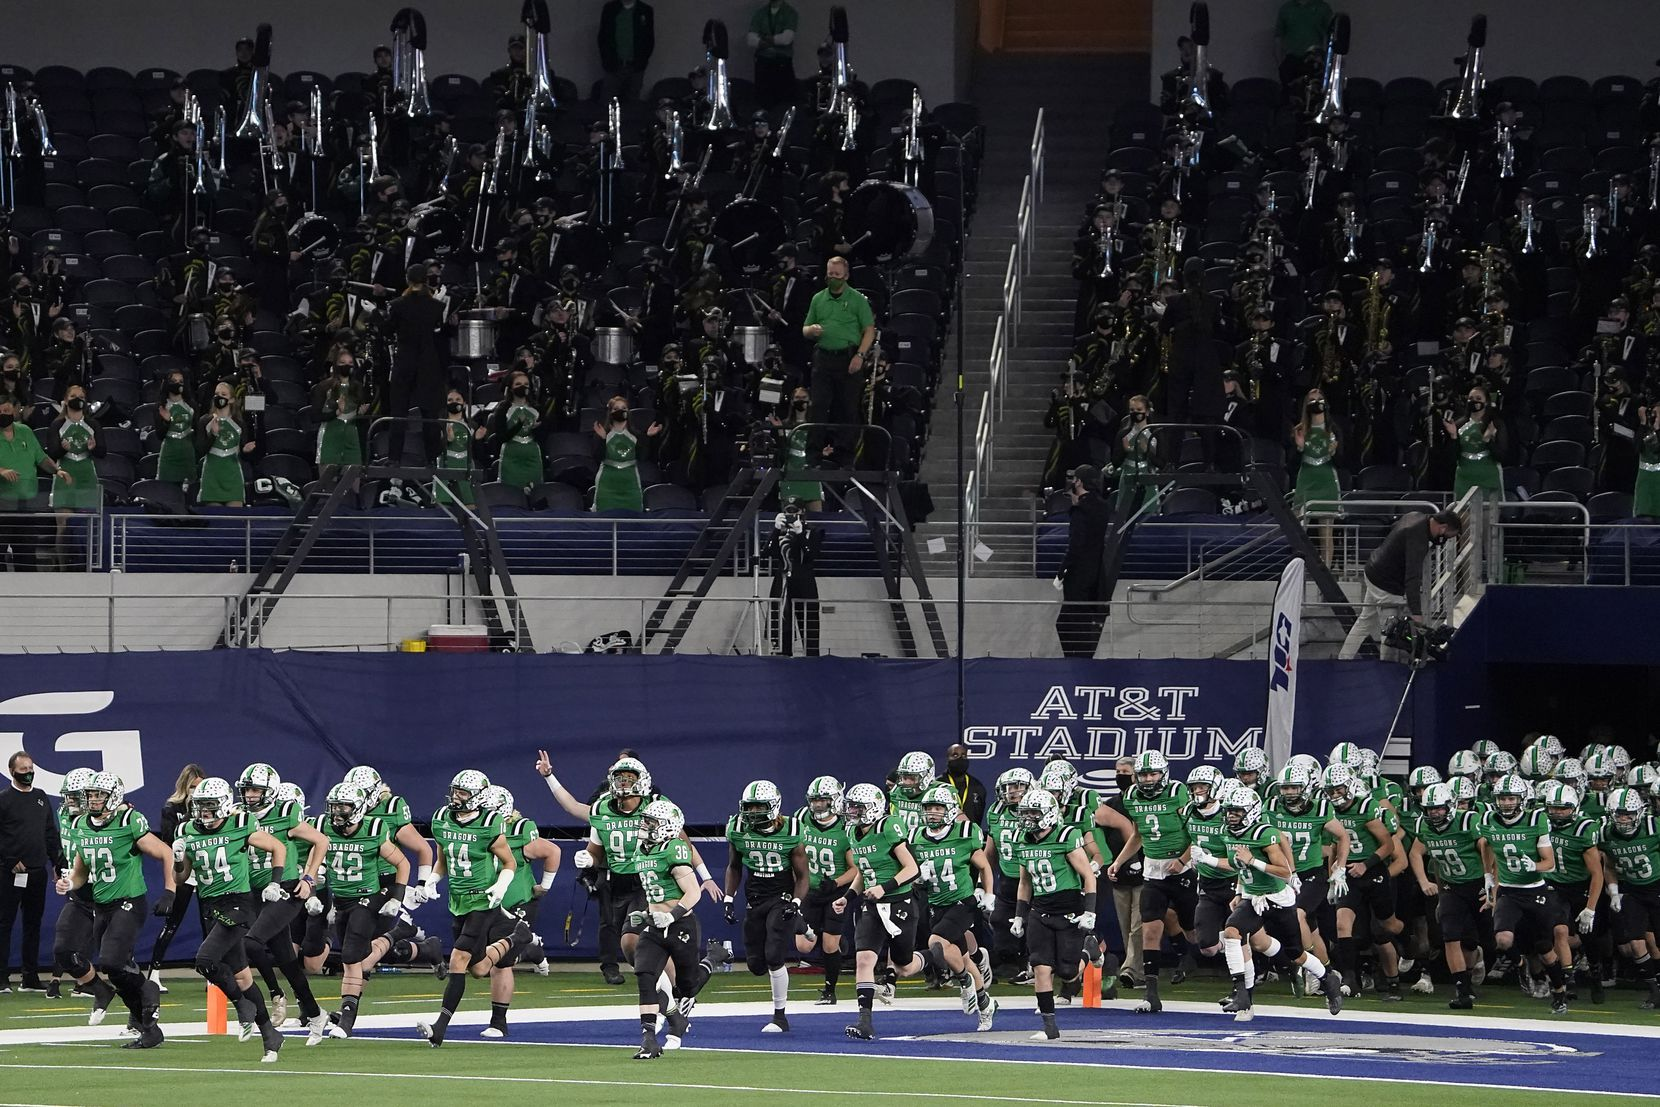 The Southlake Carroll Dragons take the field to face Austin Westlake in the Class 6A Division I state football championship game at AT&T Stadium on Saturday, Jan. 16, 2021, in Arlington, Texas. (Smiley N. Pool/The Dallas Morning News)